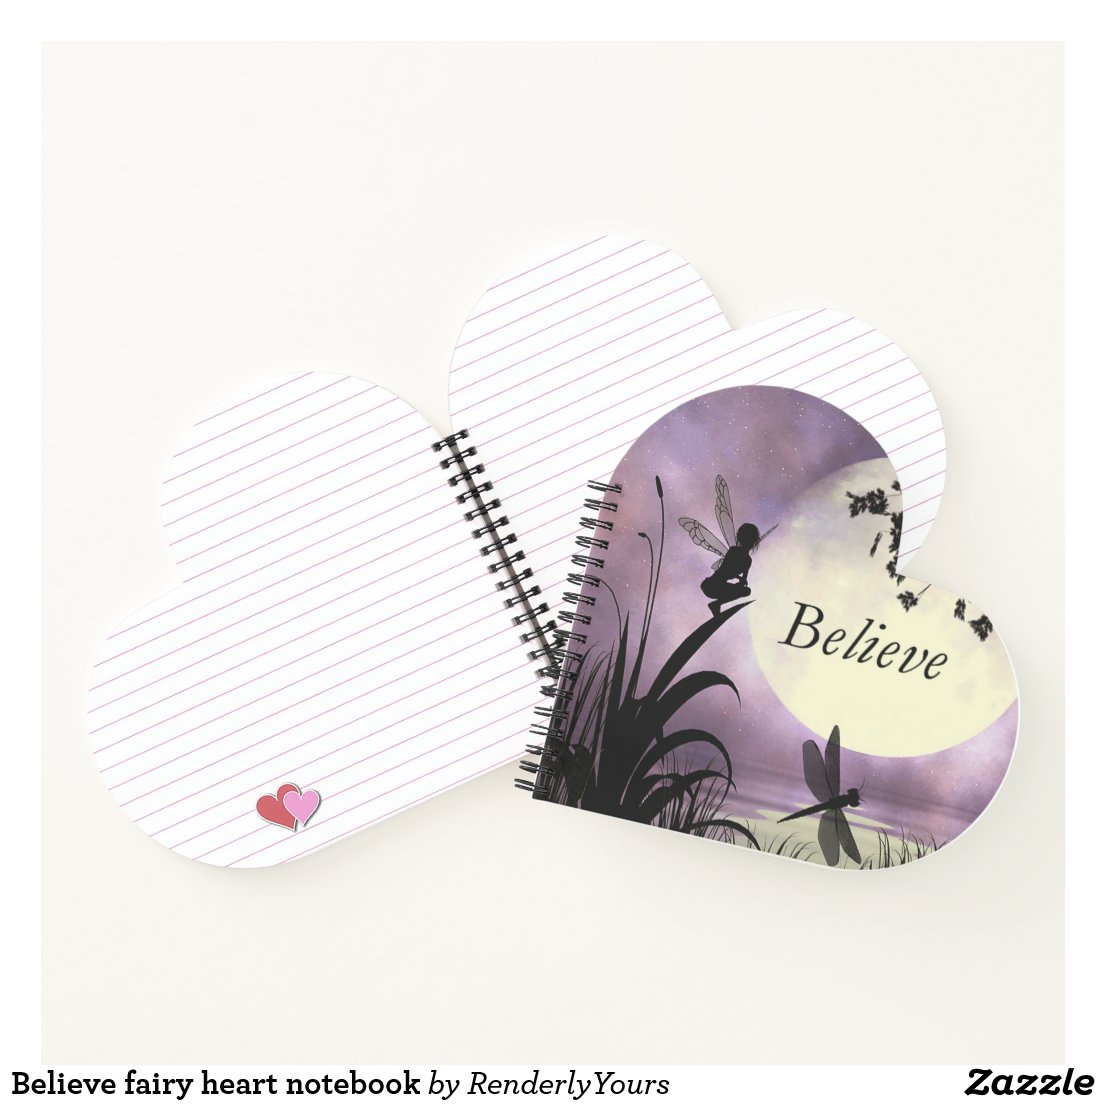 Believe fairy heart notebook